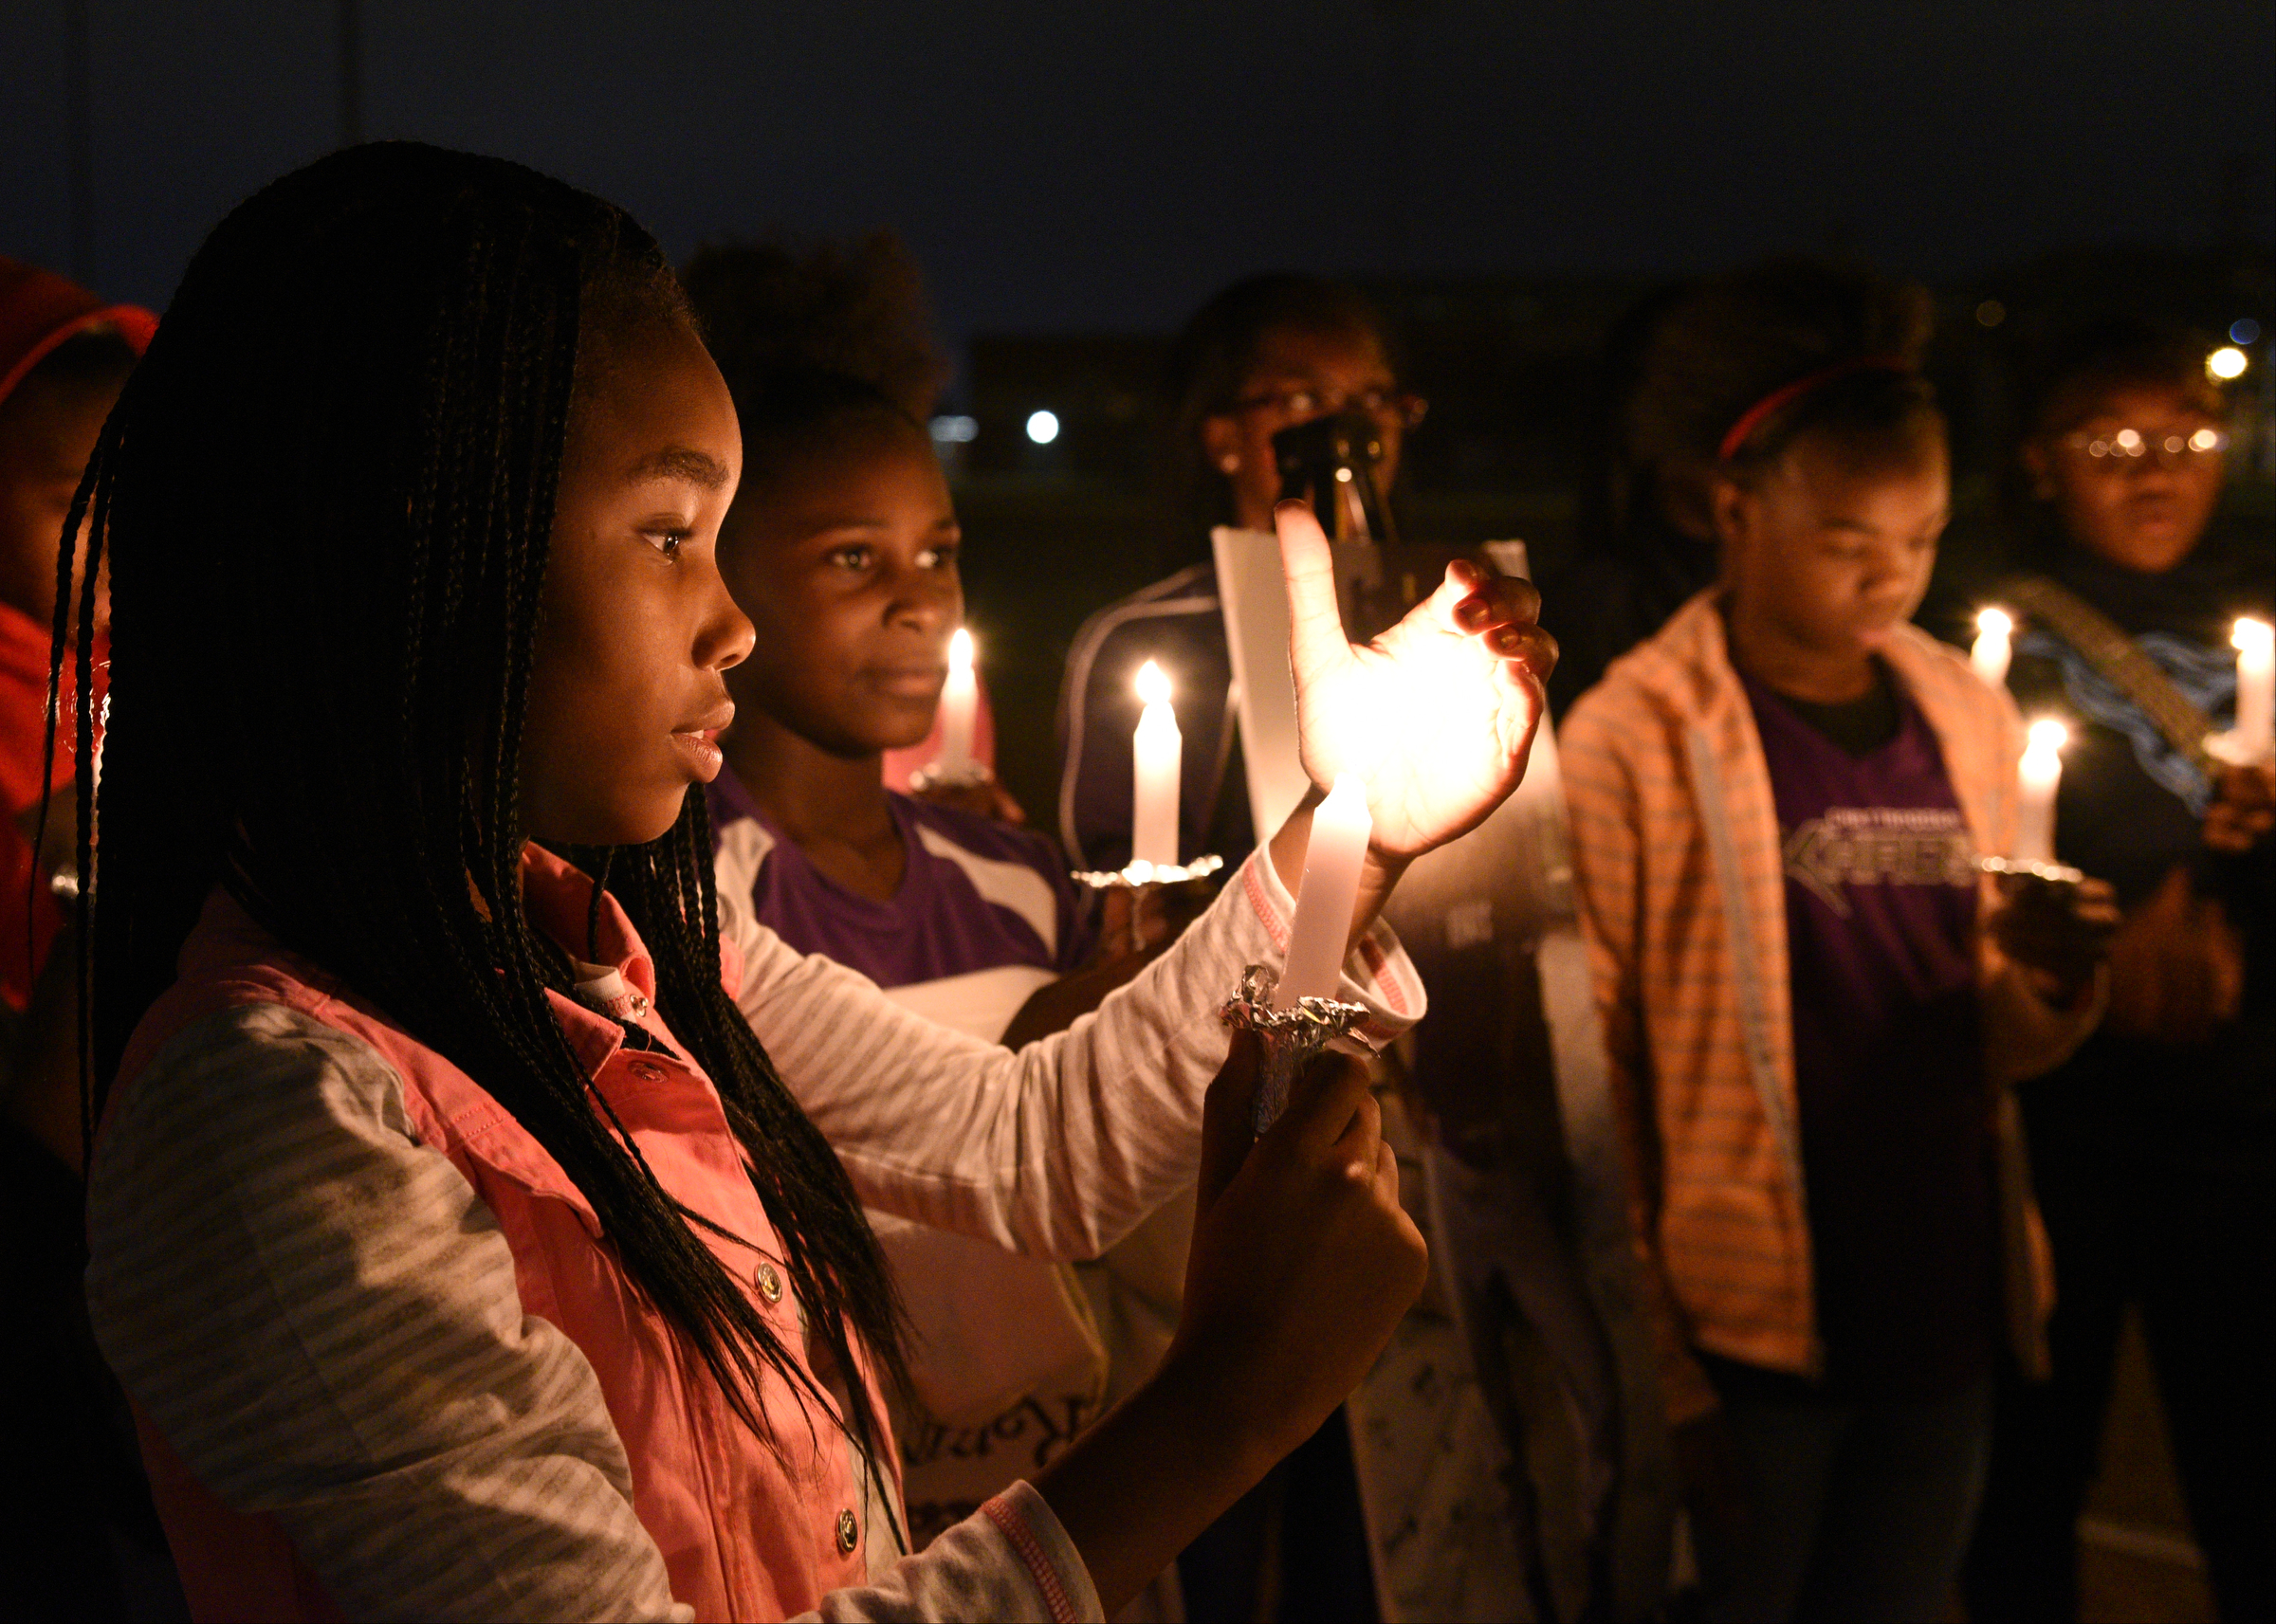 Ma'Liyah Montgomery participates in a candlelight vigil on Nov. 23, 2016, to remember Zoie Nash, one of six elementary school students killed that week in a school bus crash in Chattanooga, Tenn.